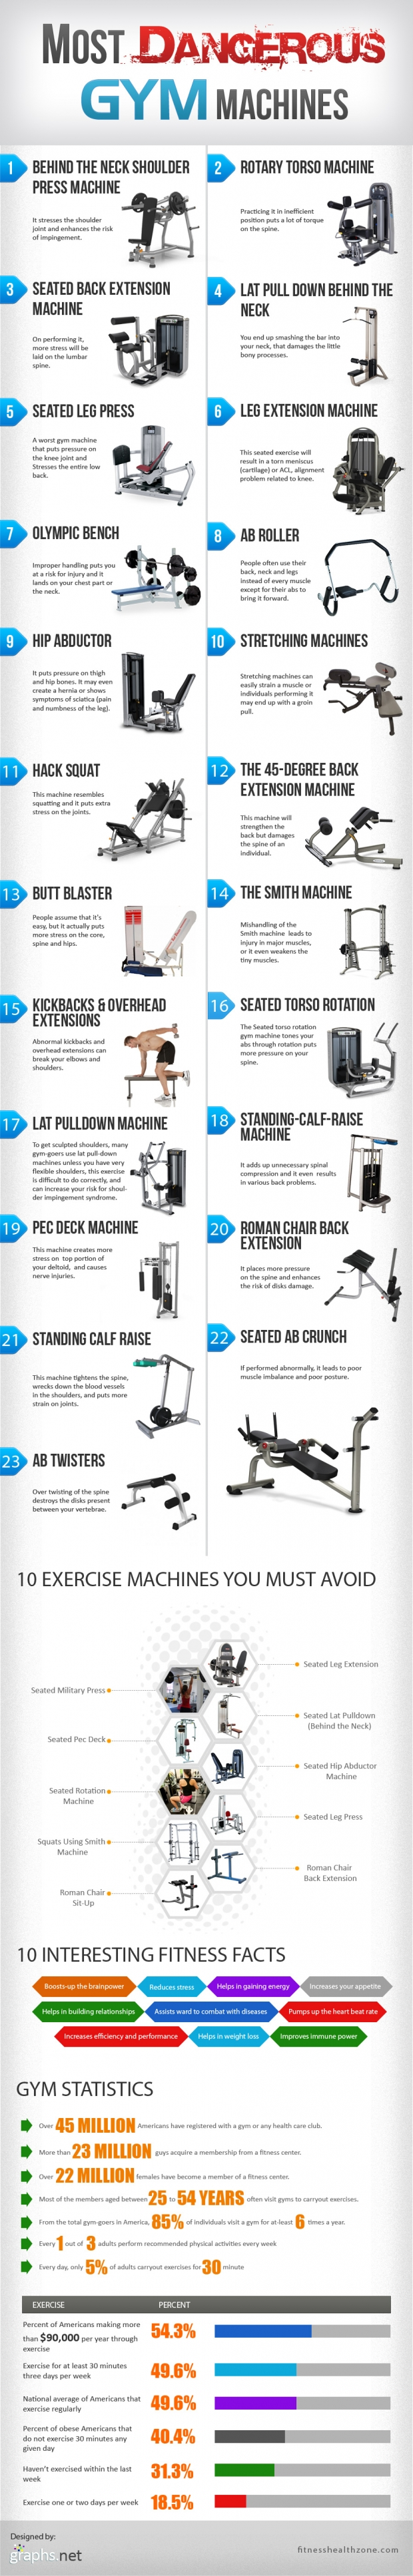 Most-Dangerous-Gym-Machines-1